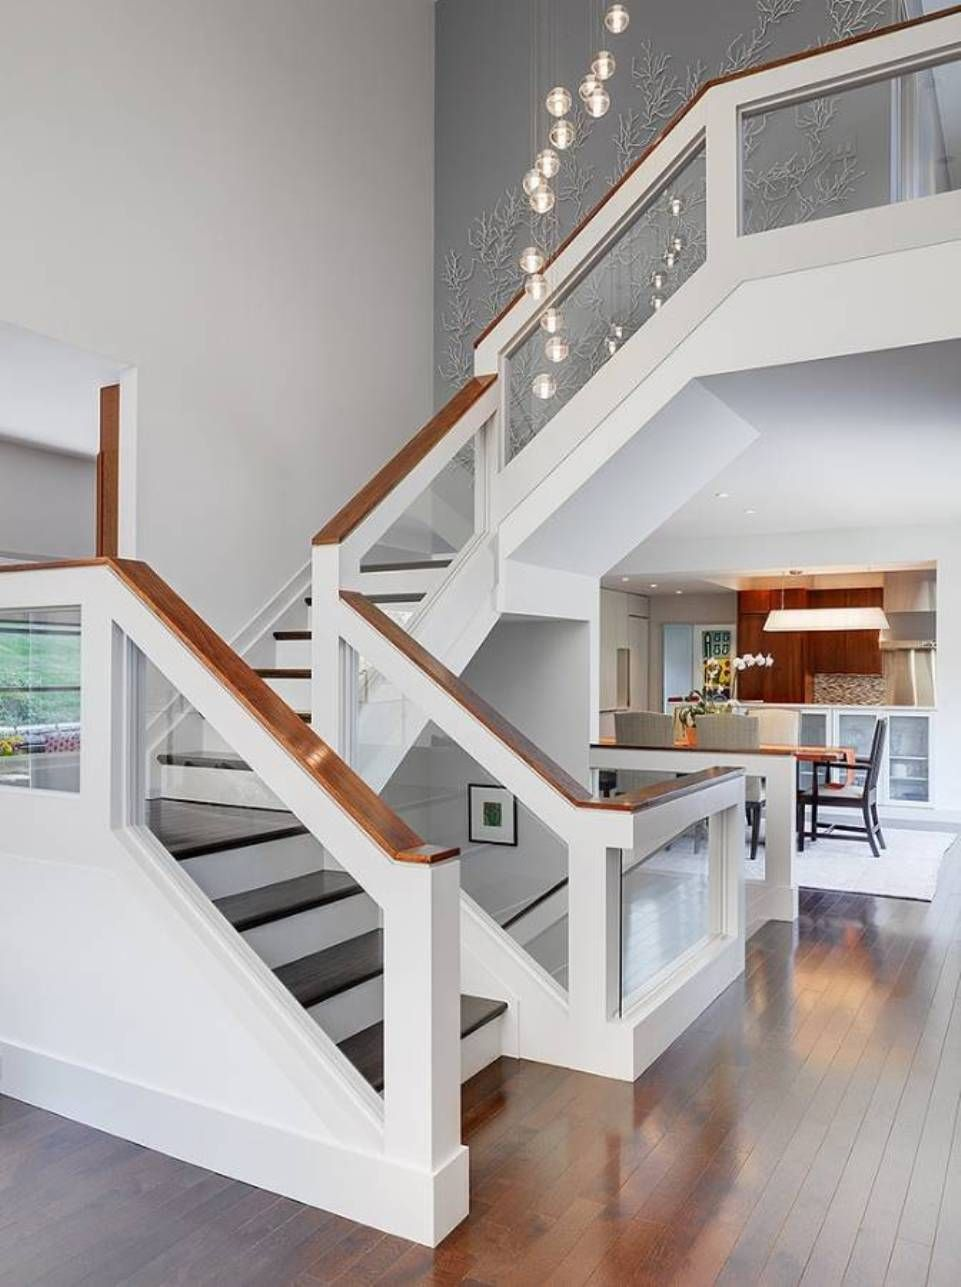 Best Home Design And Decor Decorative Handrail Staircase 640 x 480